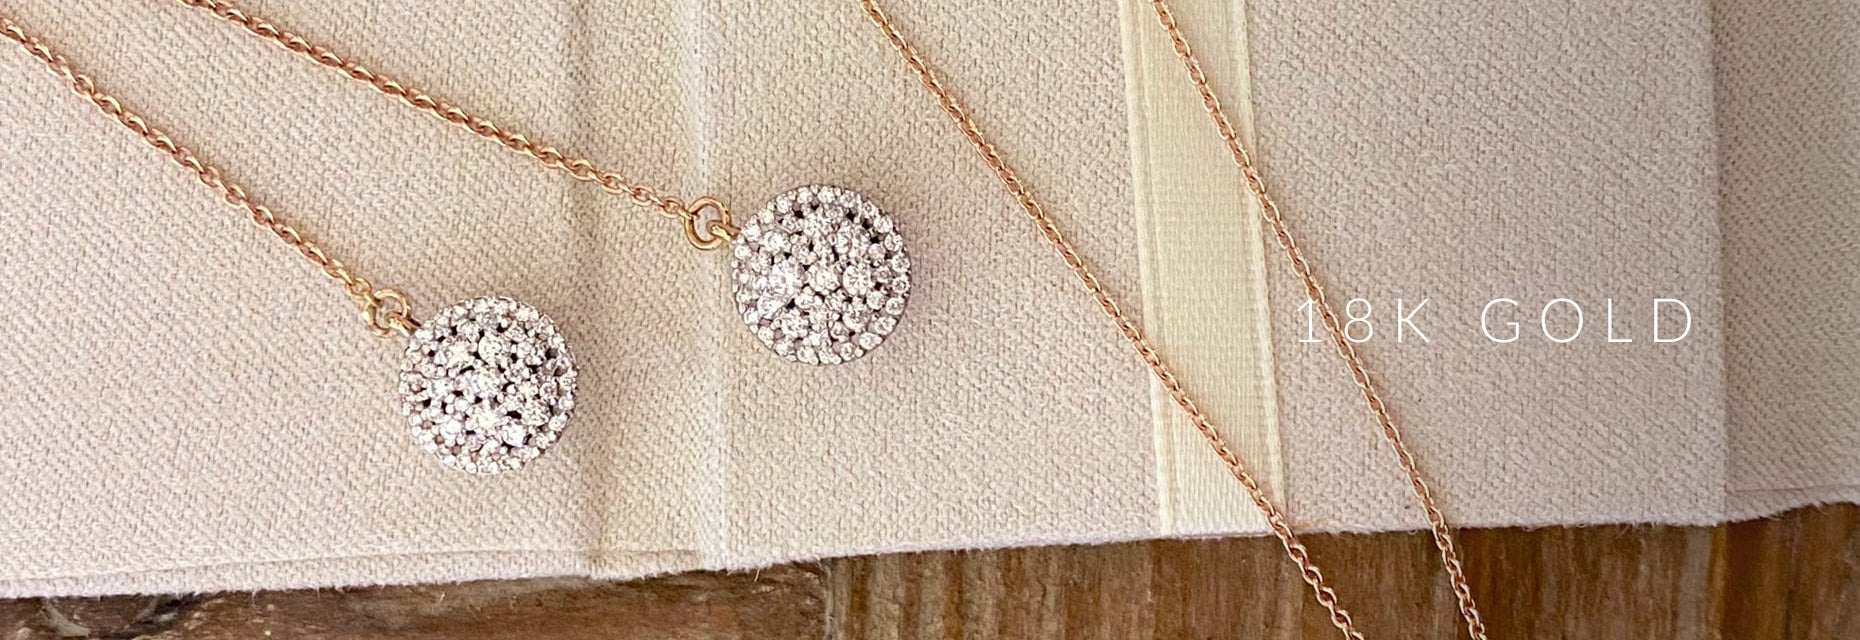 18k gold collection image delbrenna jewelry